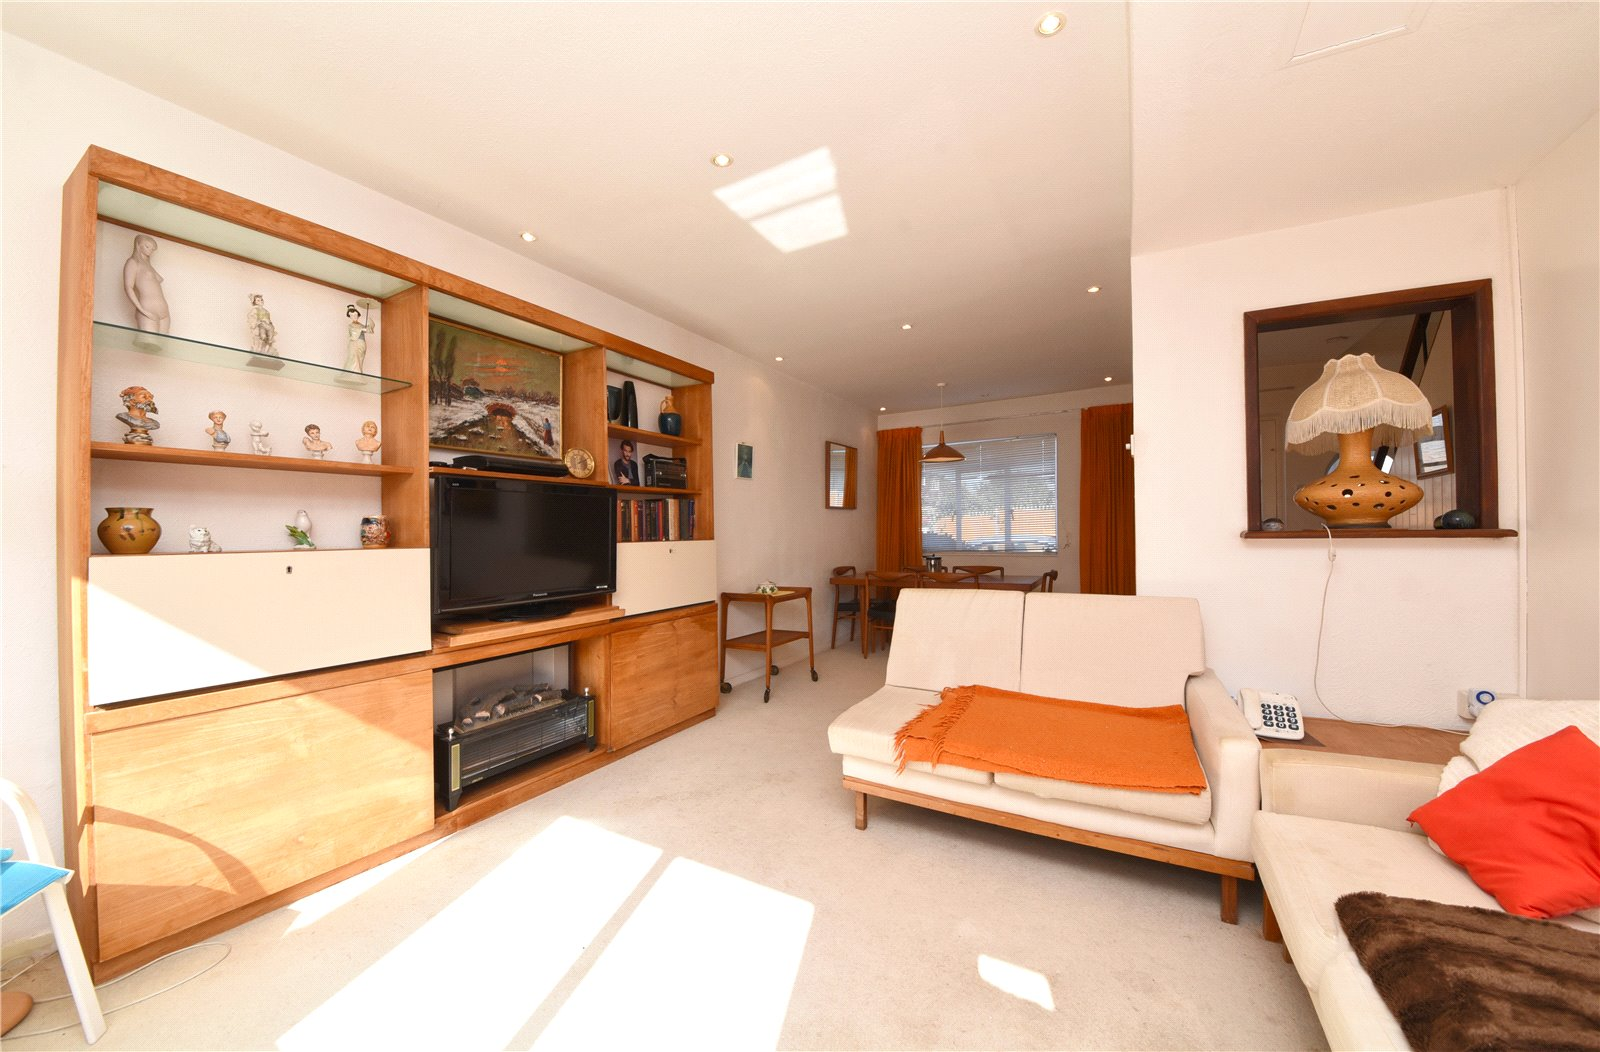 3 bed house for sale in West Finchley, N3 1PB - Property Image 1